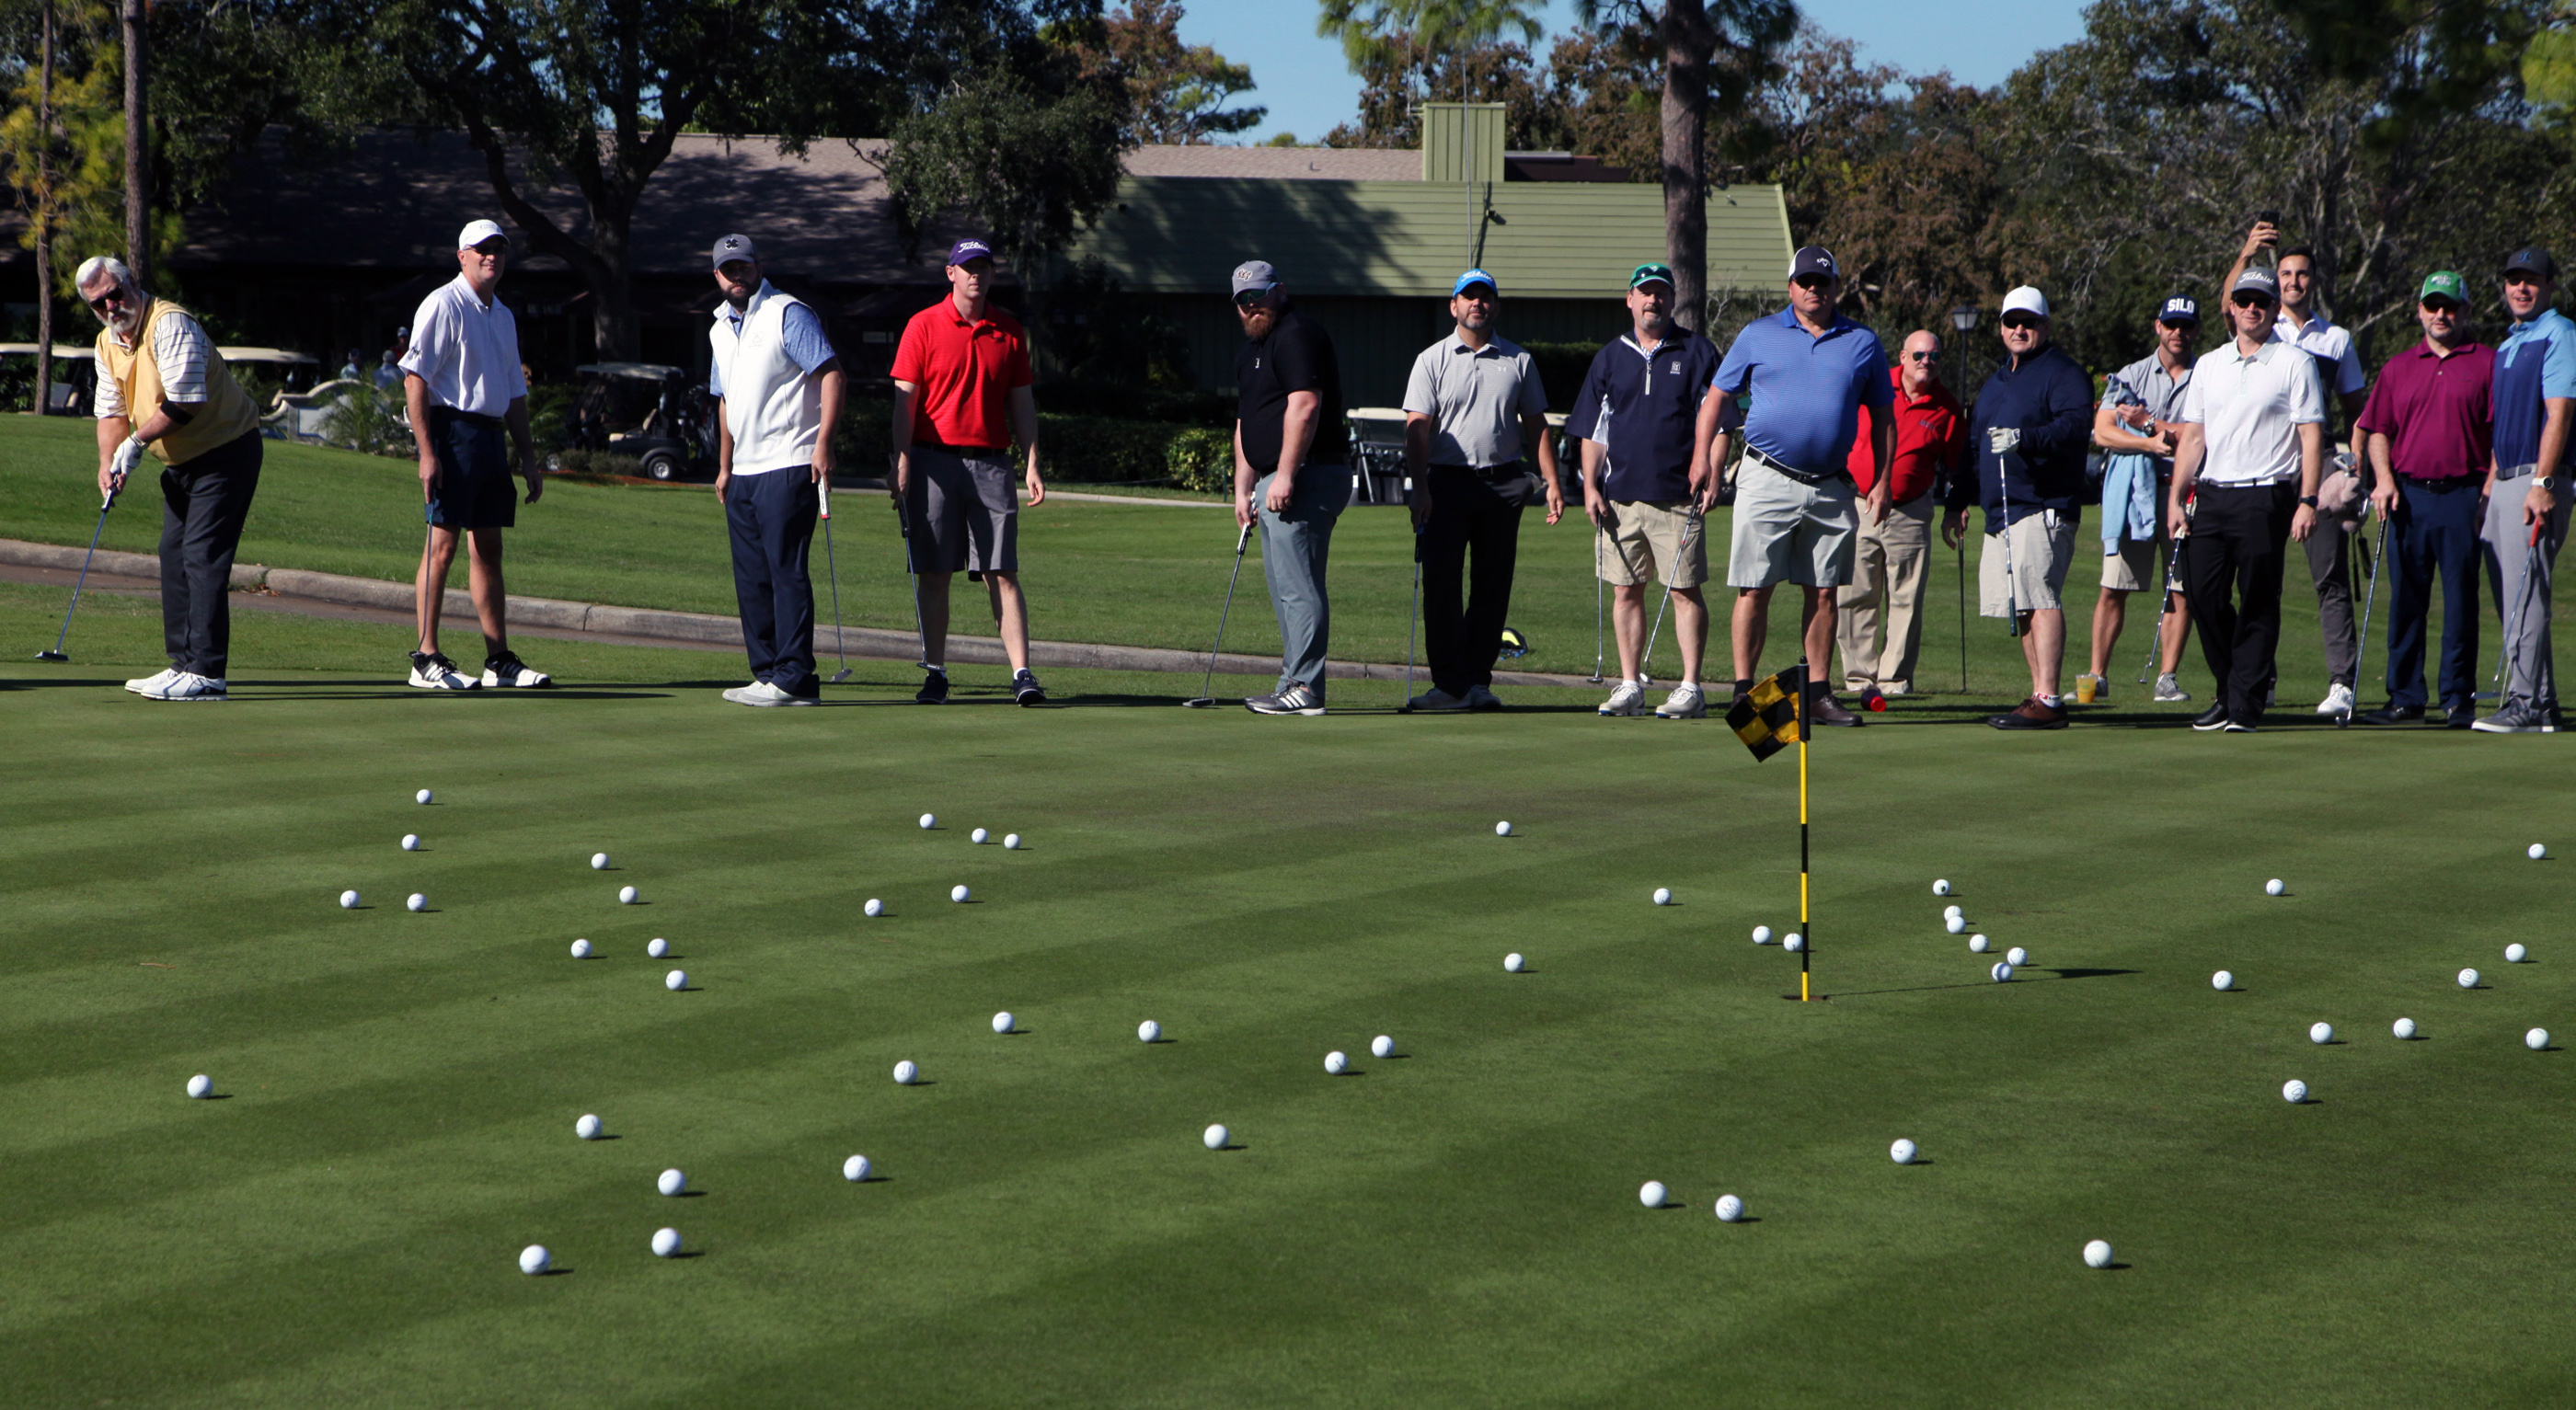 7th Annual Companies for Kids Invitational